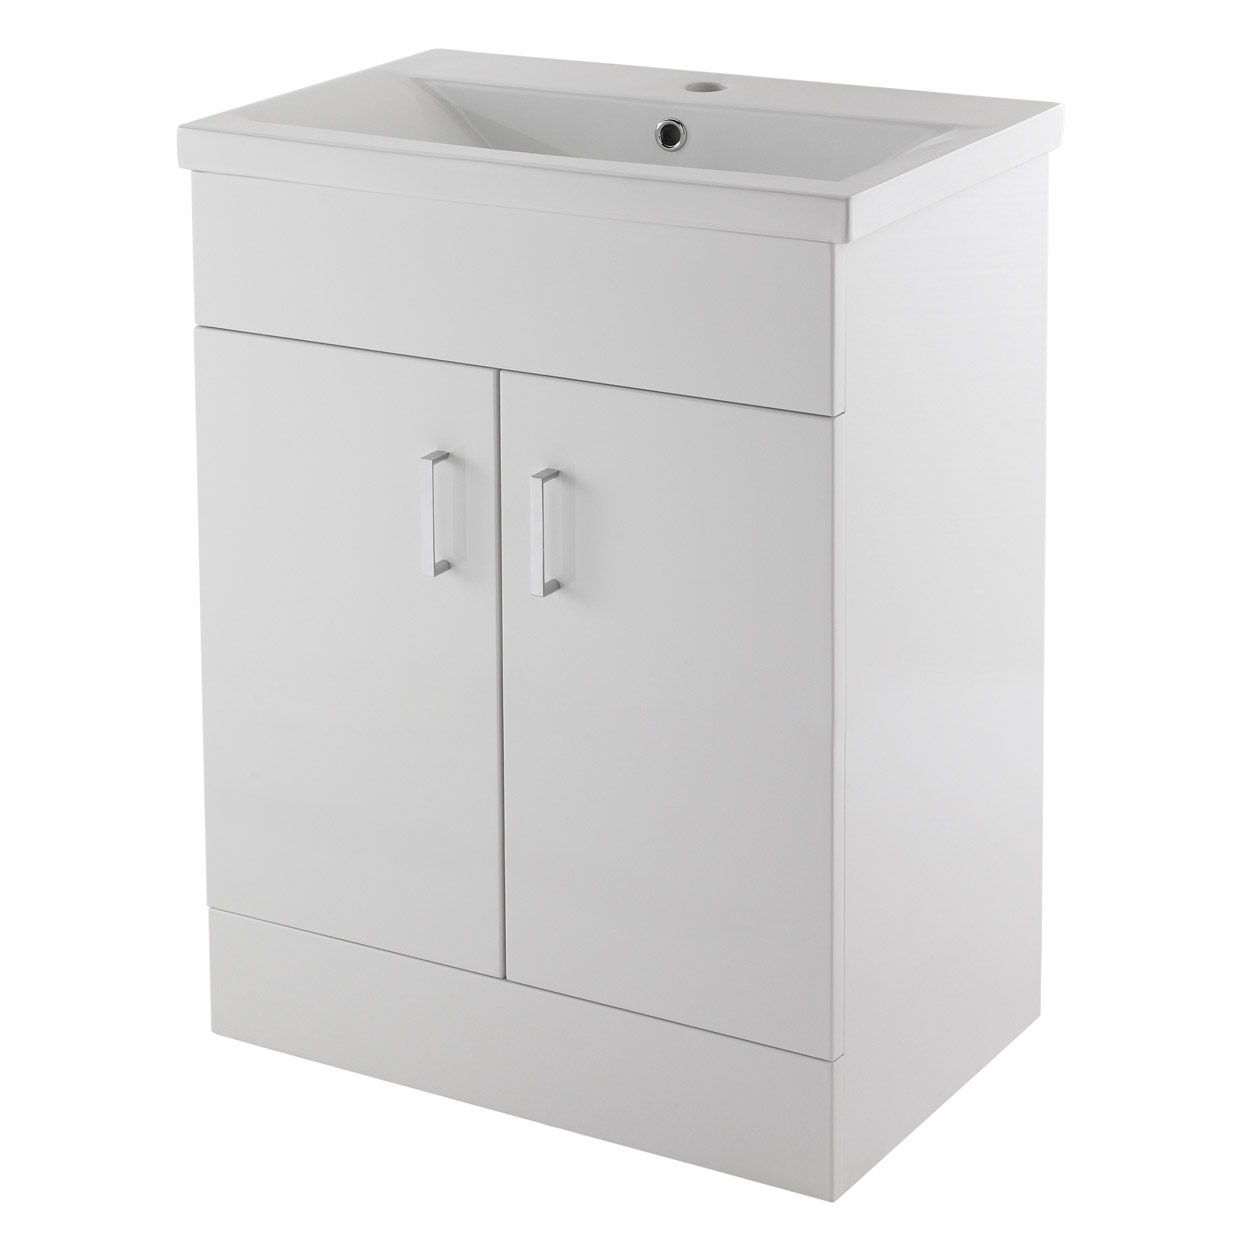 Premier Eden Floor Standing 2-Door Vanity Unit and Basin 1 Gloss White - 600mm Wide